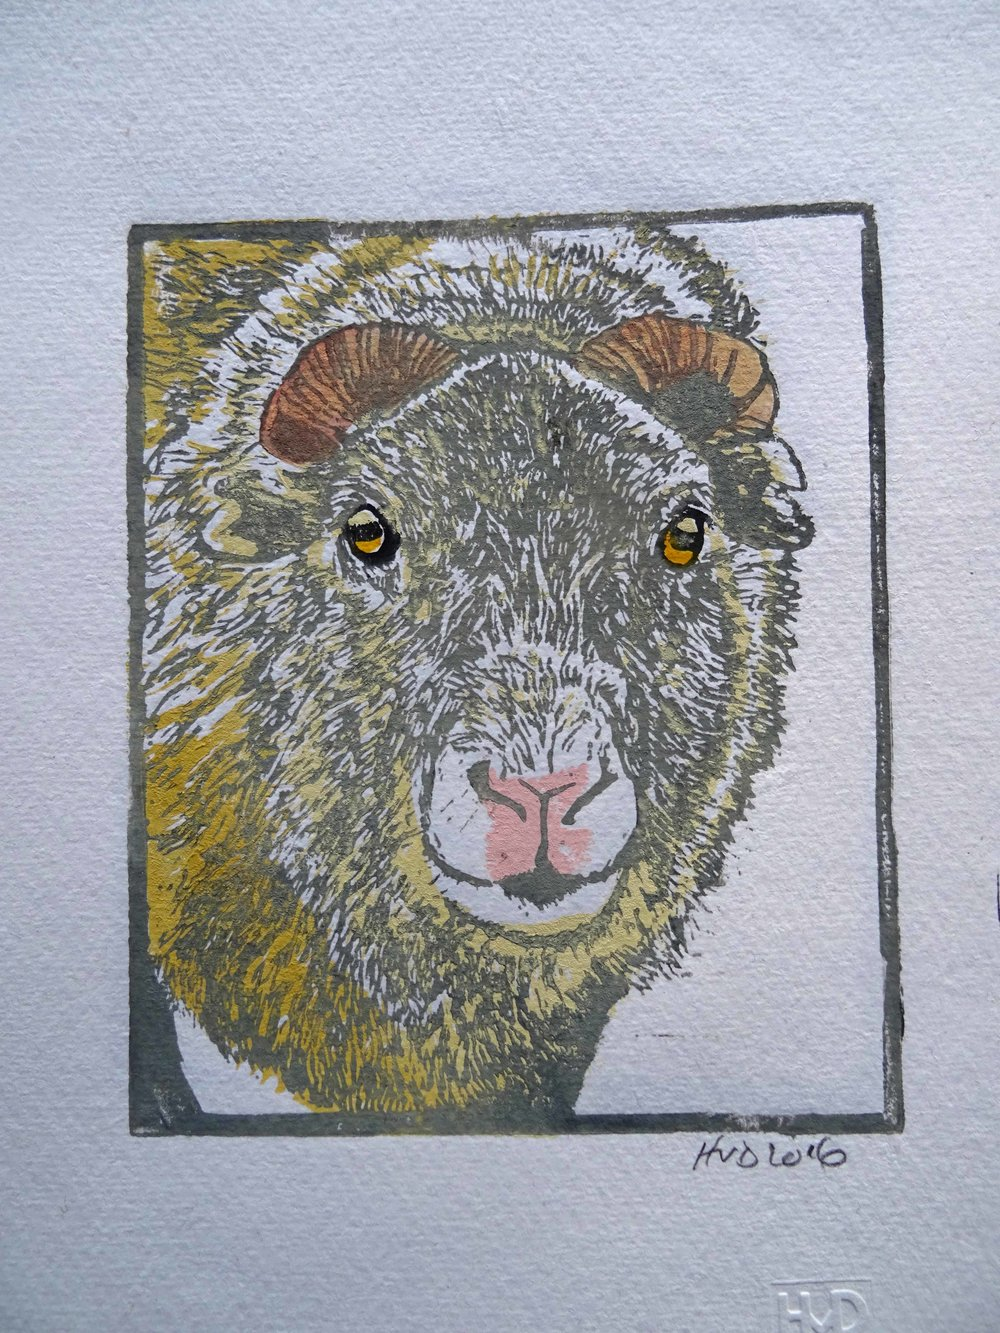 148A - sheep head. 2-plate lino 16x13 cm, 40 €